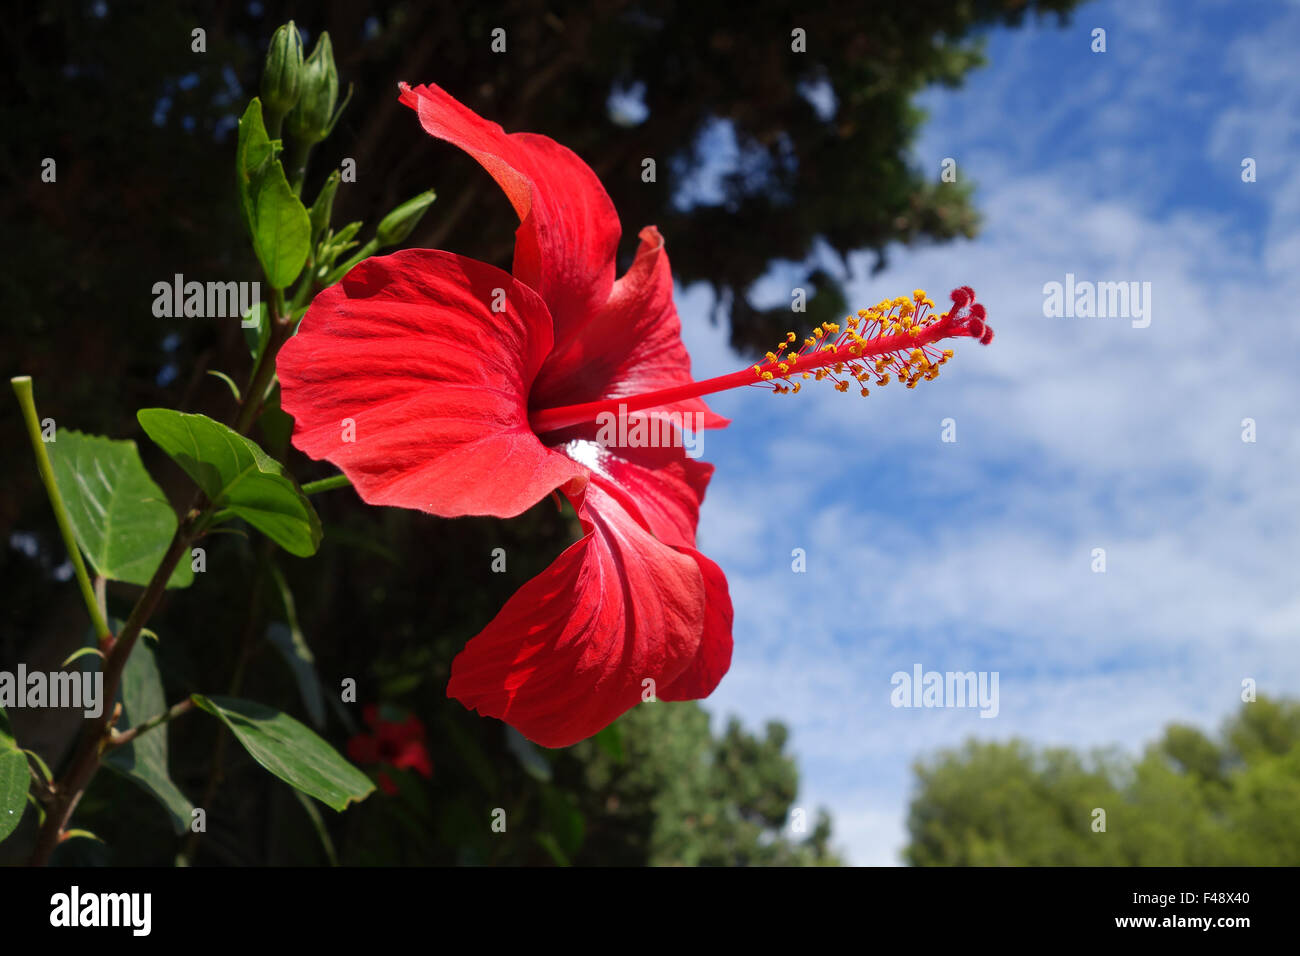 Name of red flower with yellow stamen mightylinksfo